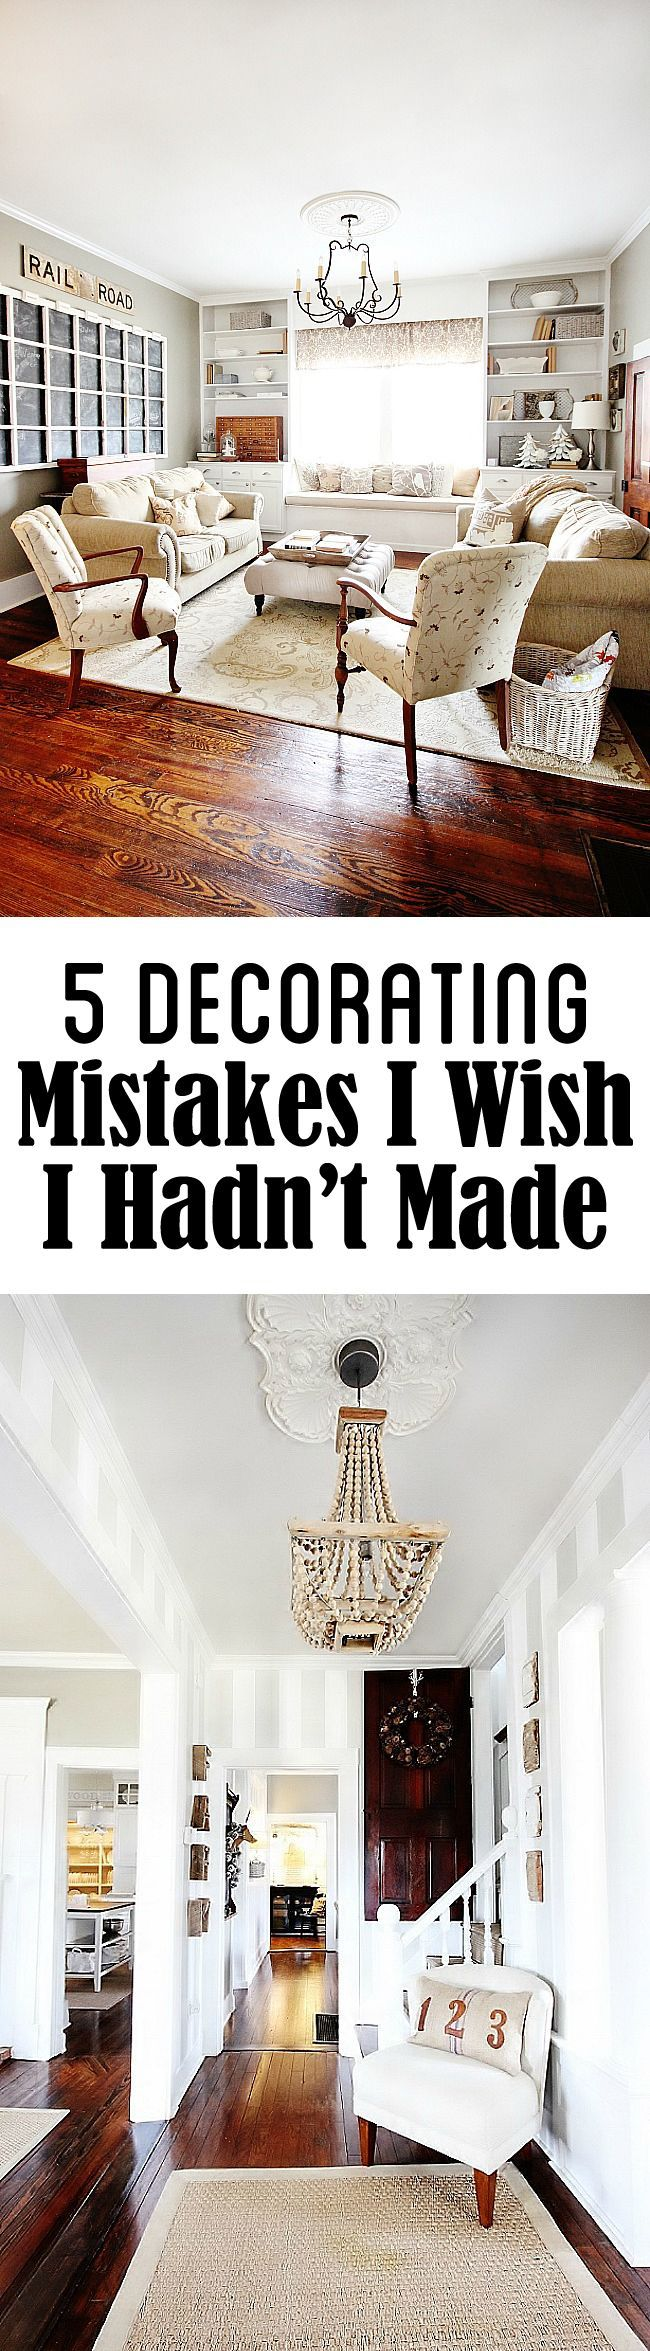 Five Decorating Mistakes I Wish I Hadn't Made